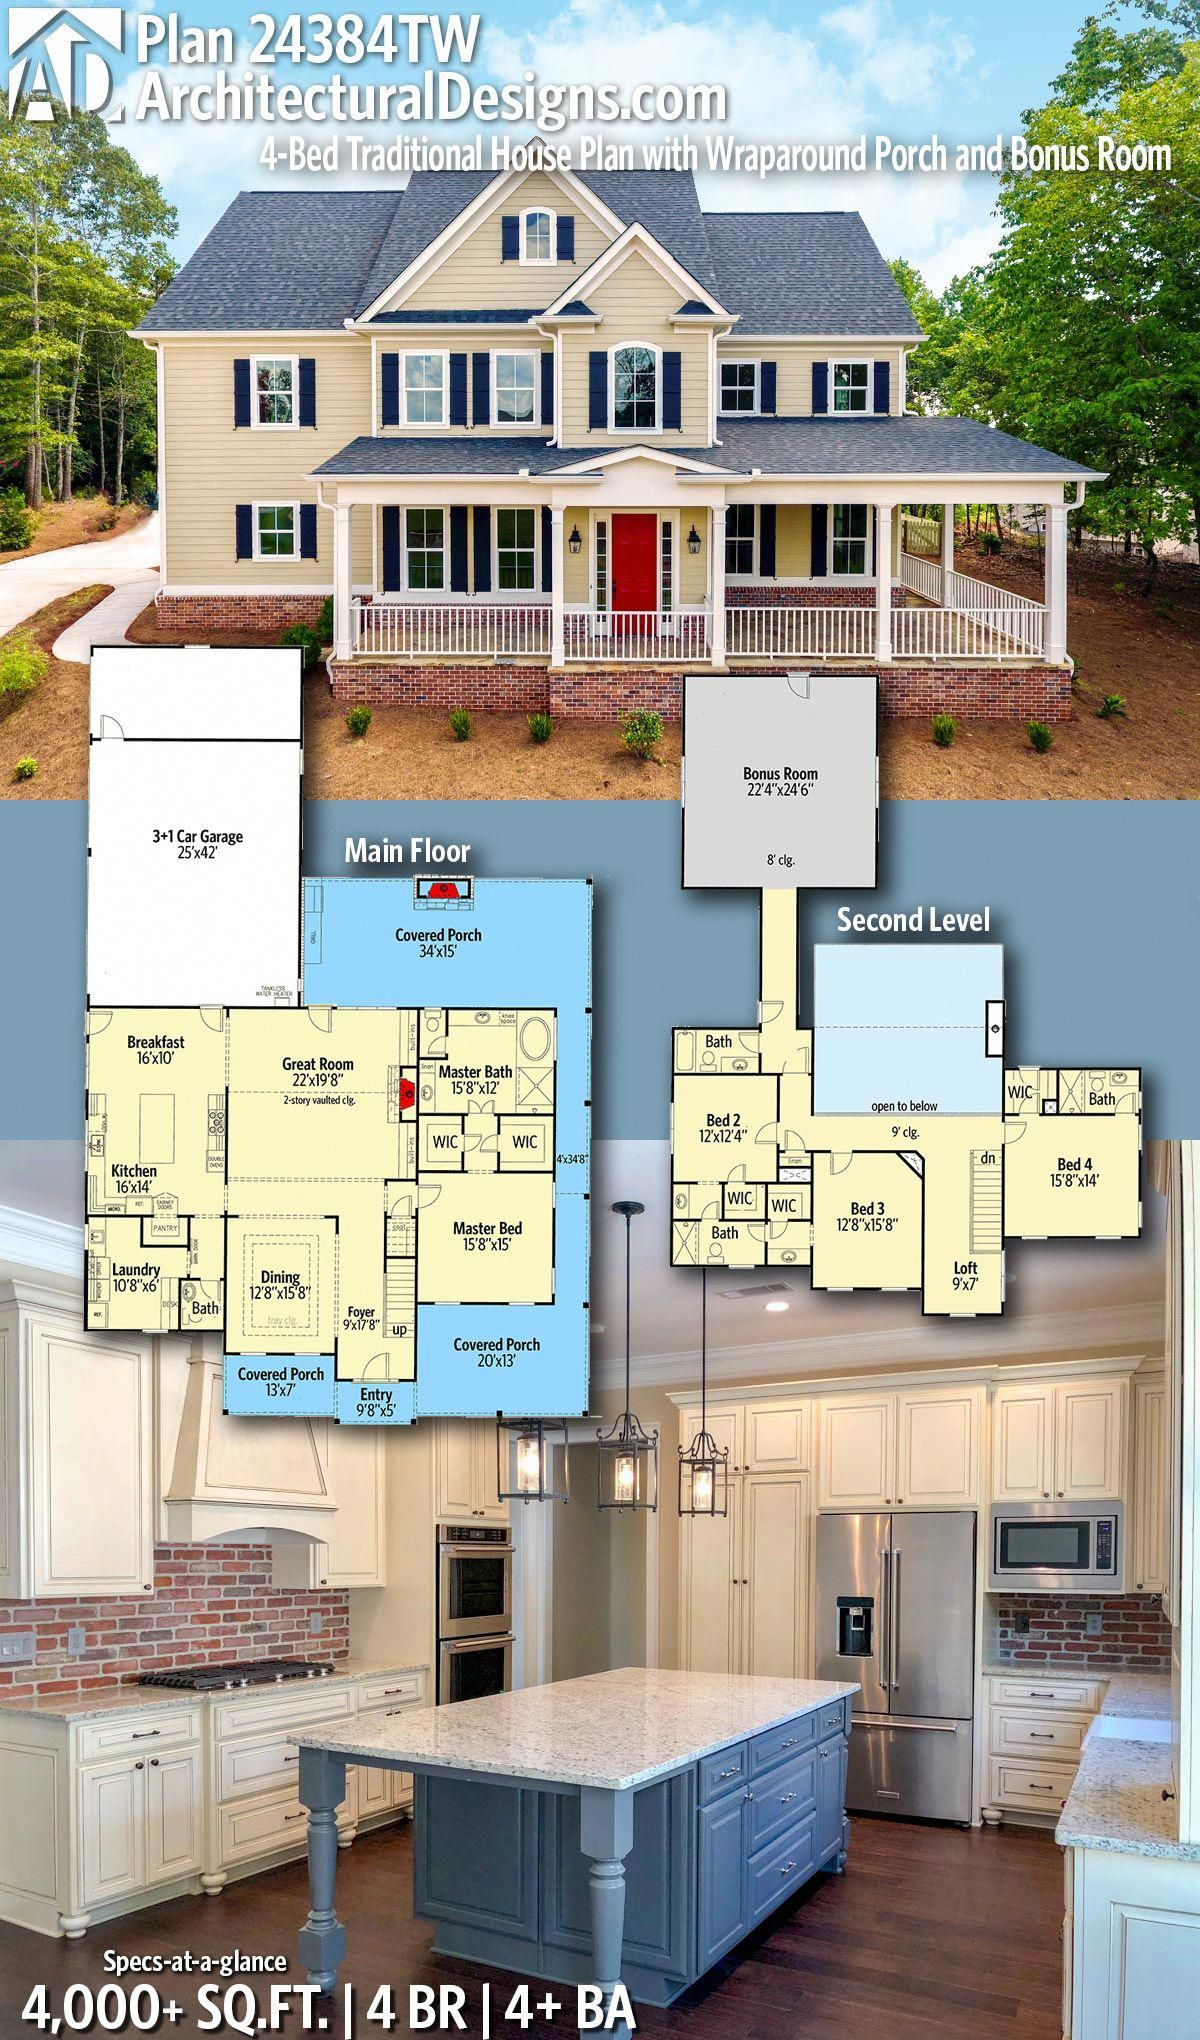 Introducing Architectural Designs Traditional House Plan 24384TW with 4 Bedrooms | 4 full baths and 1 half bath in just over 4,000+ Sq Ft. with a finished walkout #basement. Ready when you are! Where do YOU want to build? #24384TW #adhouseplans #architecturaldesigns #houseplans #architecture #newhome #newconstruction #newhouse #homedesign  #homeplans #architecture #home #traditional #traditionalhome #homesweethome